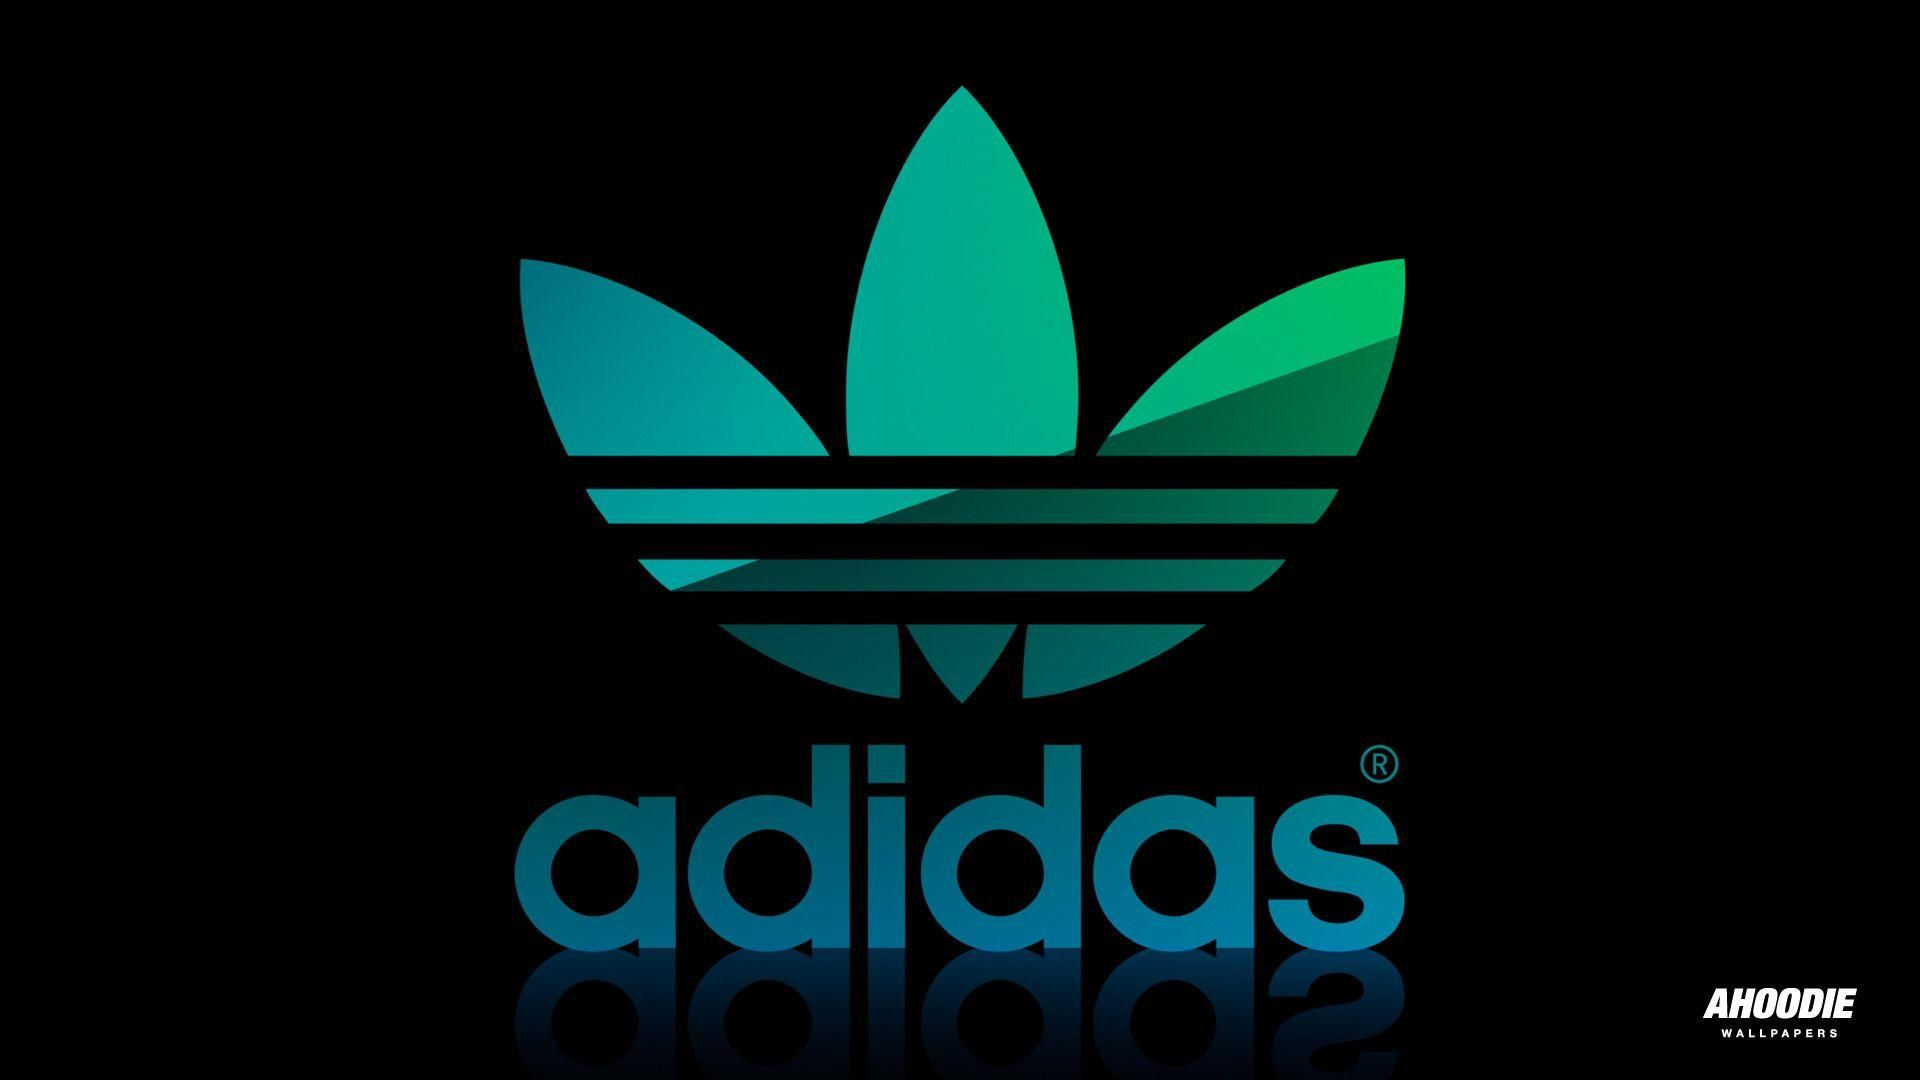 Logo Adidas Wallpapers Wallpaper Cave in 2019 Adidas